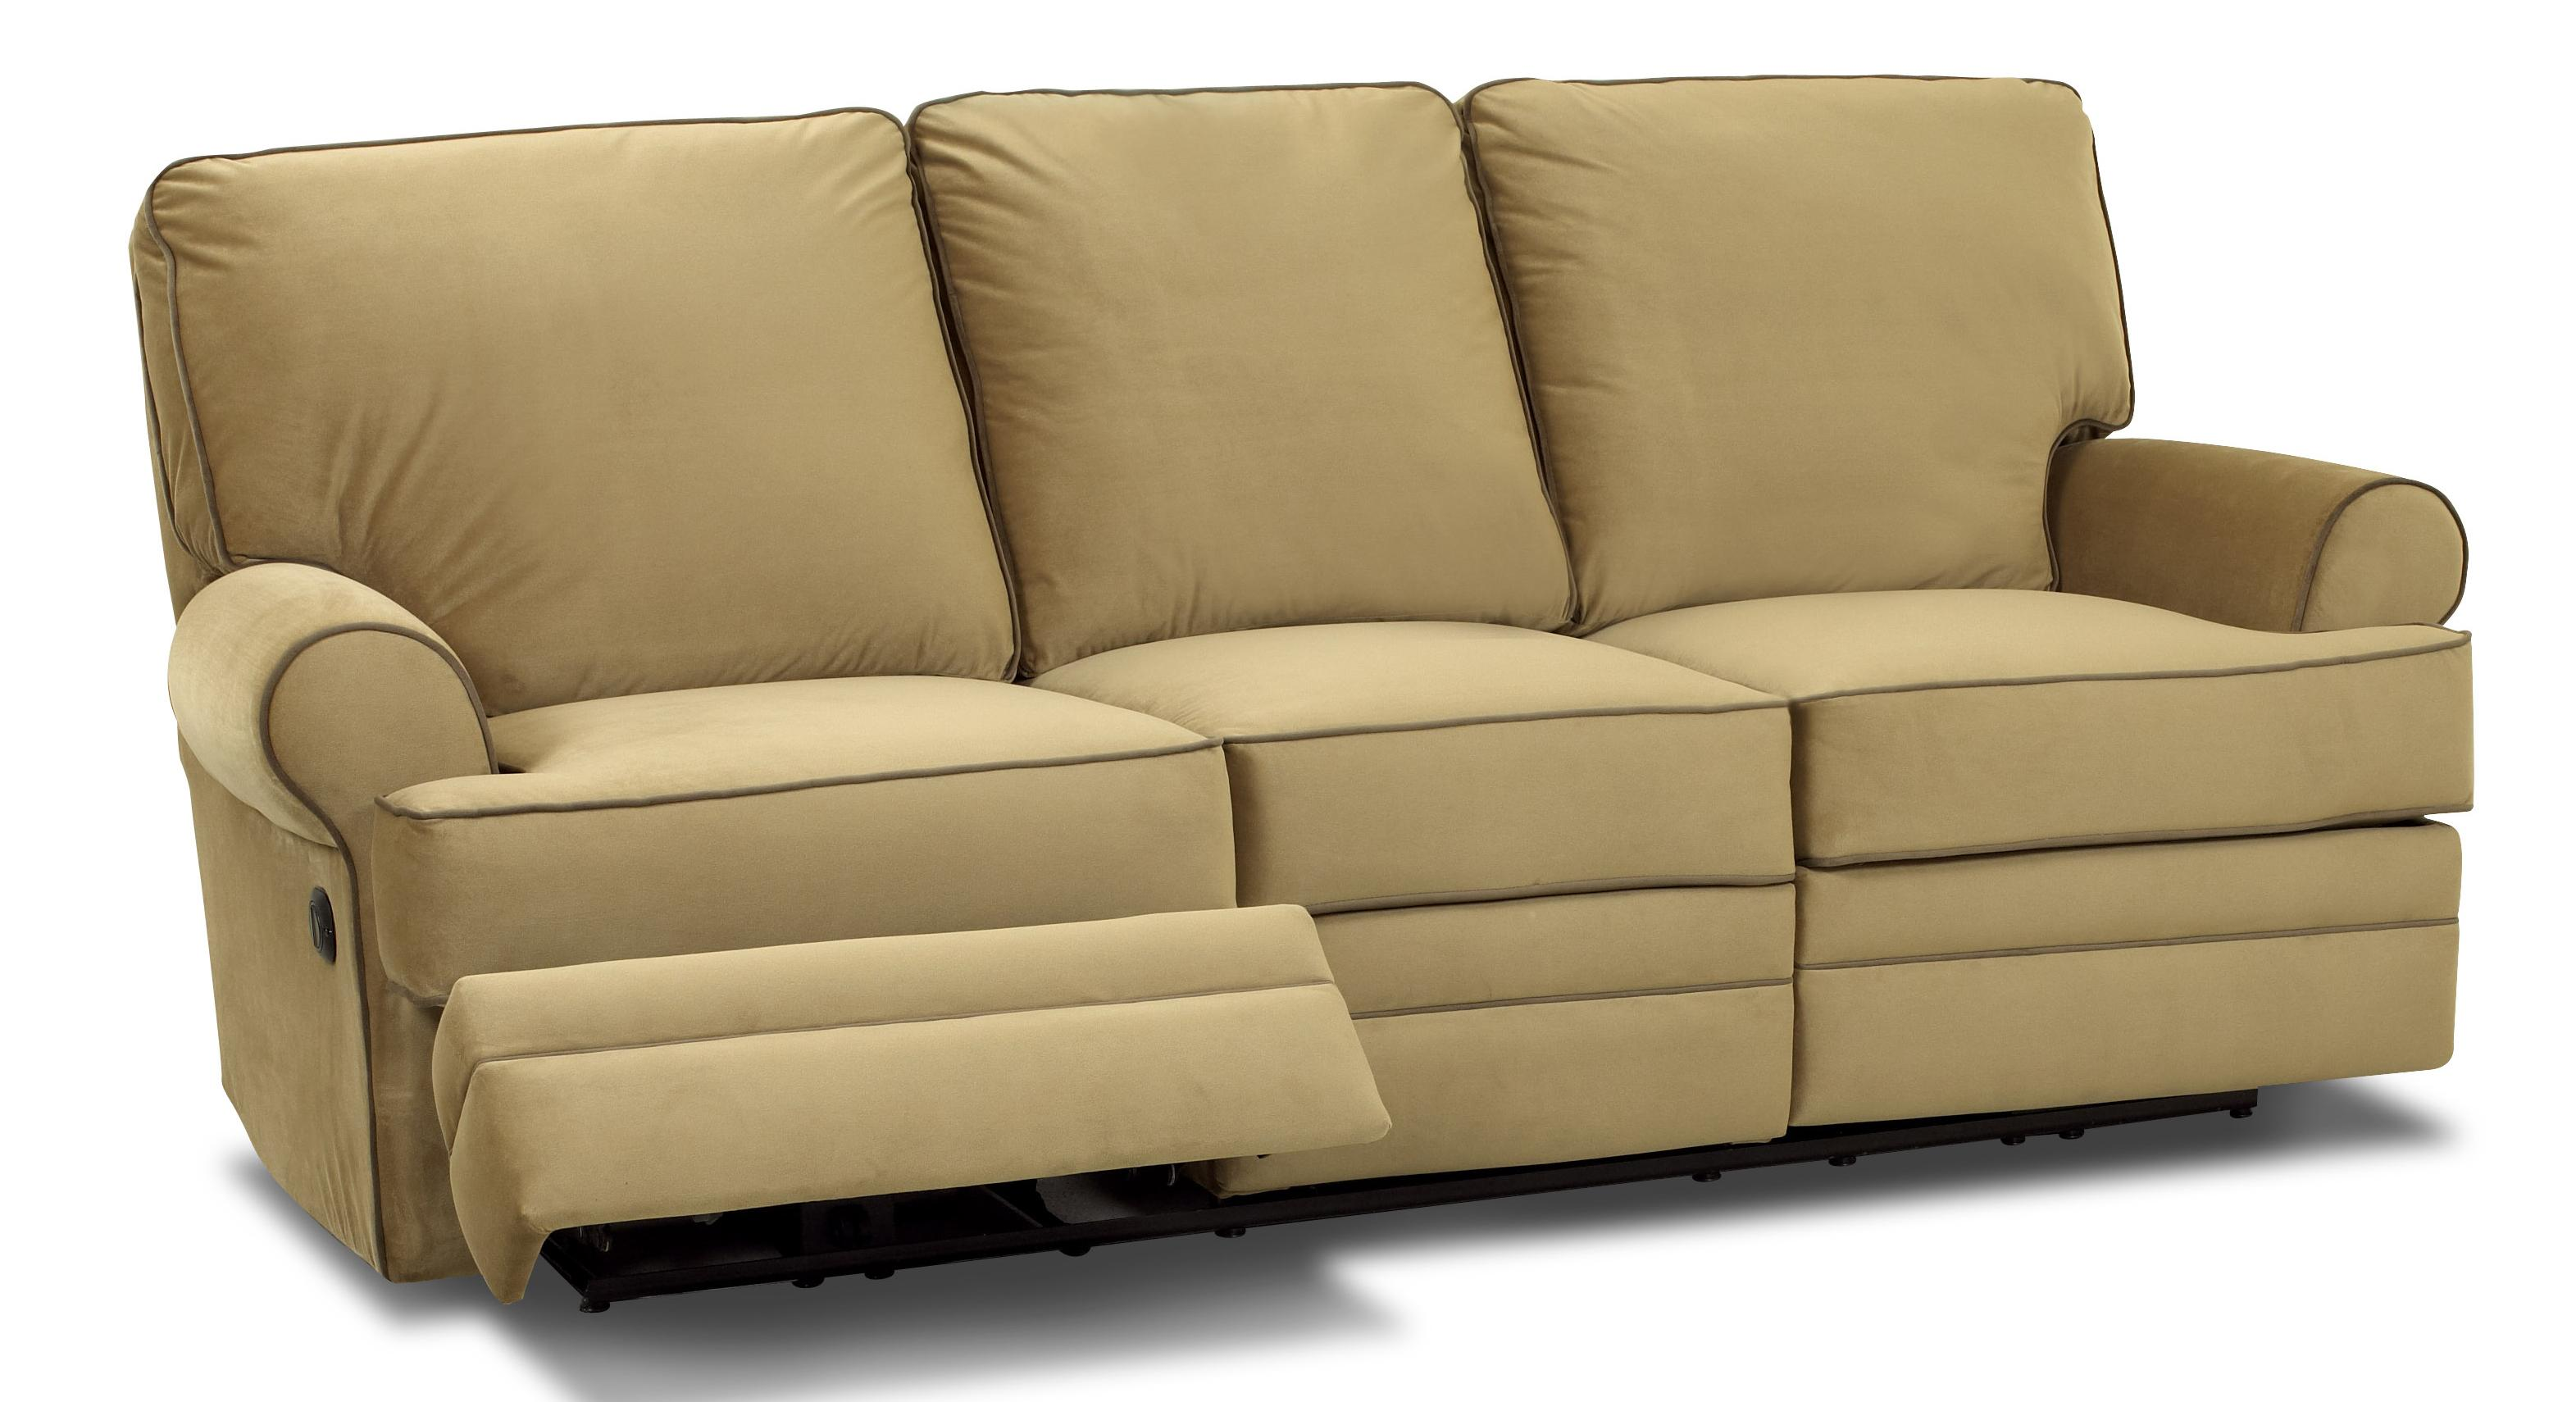 reclinable sectional sofas sofa set designs coimbatore transitional dual reclining by klaussner wolf and